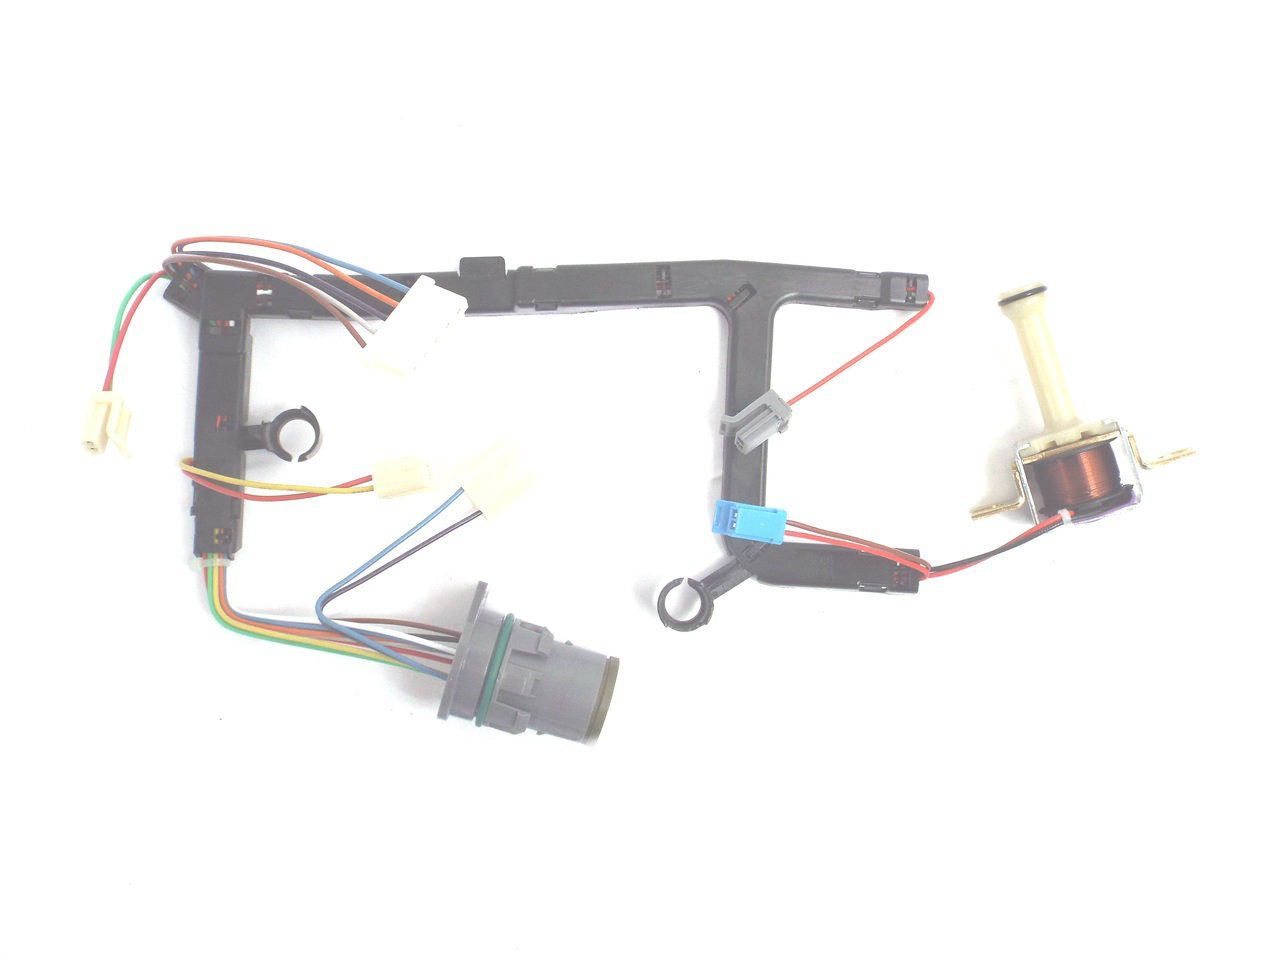 gm 4l60e transmission wiring harness from global transmission parts  1997-2003